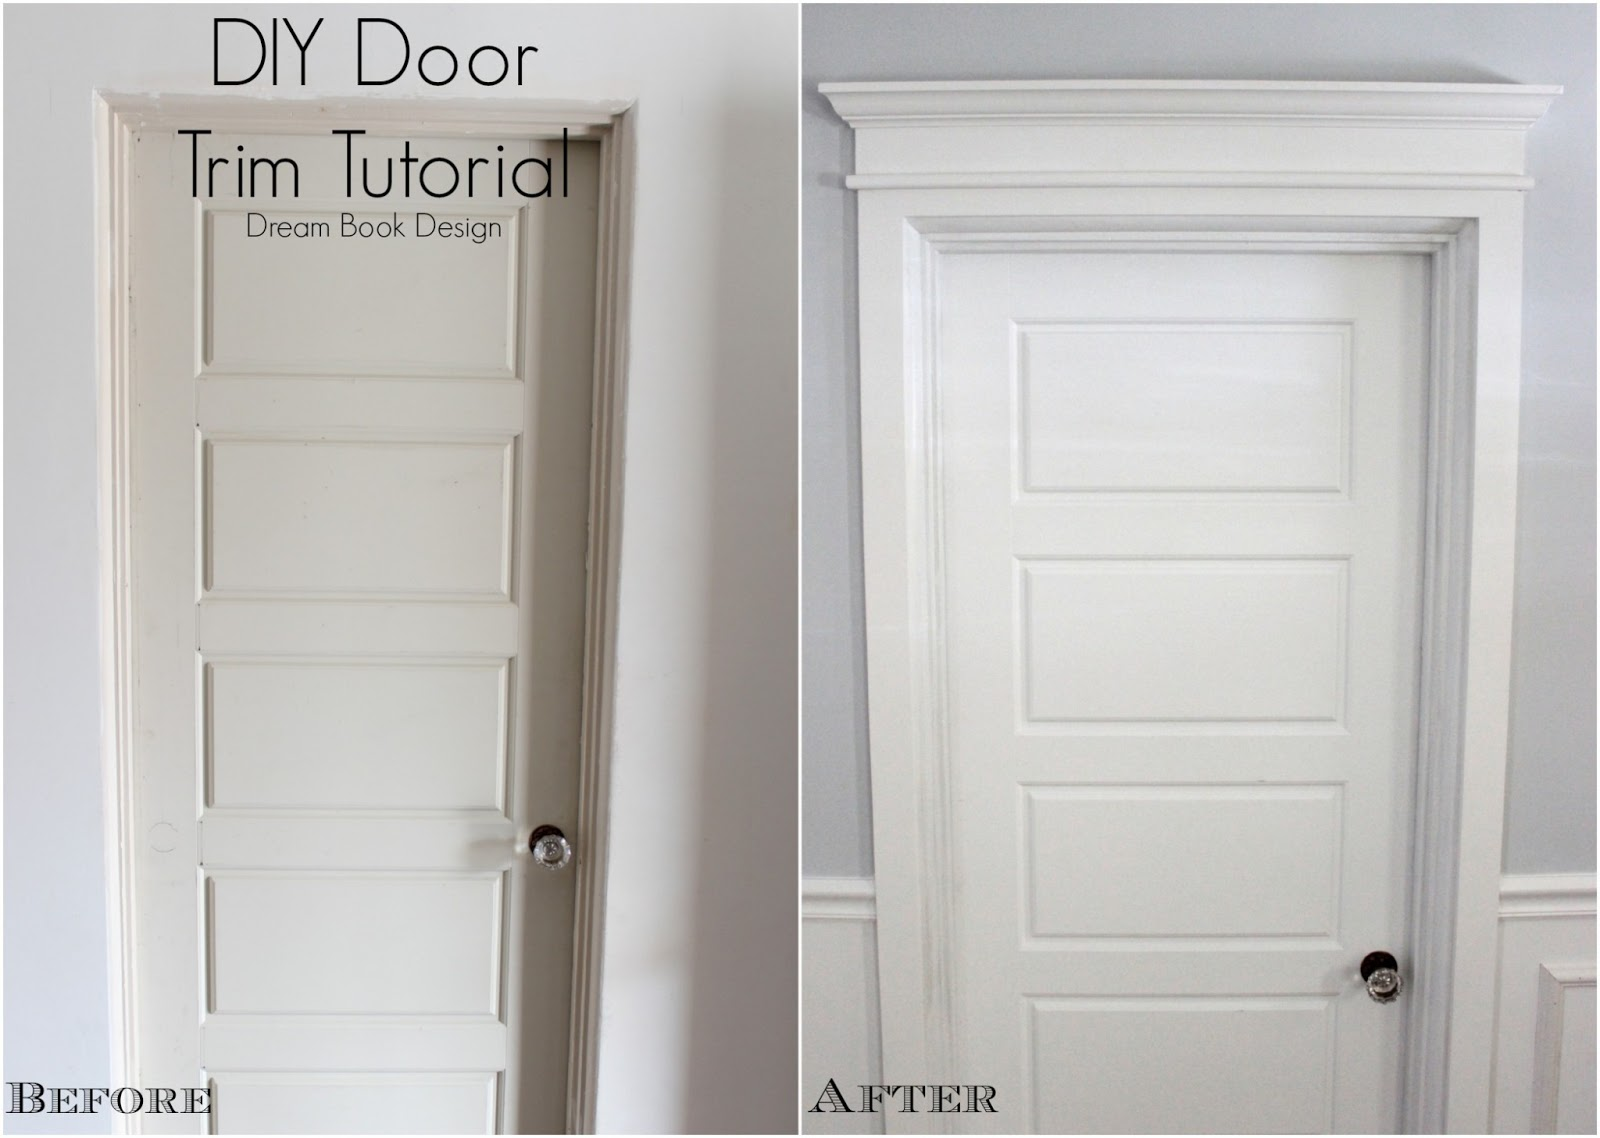 ... change your doors from no trim to Classic Southern Mansion and if you live in a Southern mansion and your doors look much more grand than this ... & DIY Door Trim Tutorial - Dream Book Design